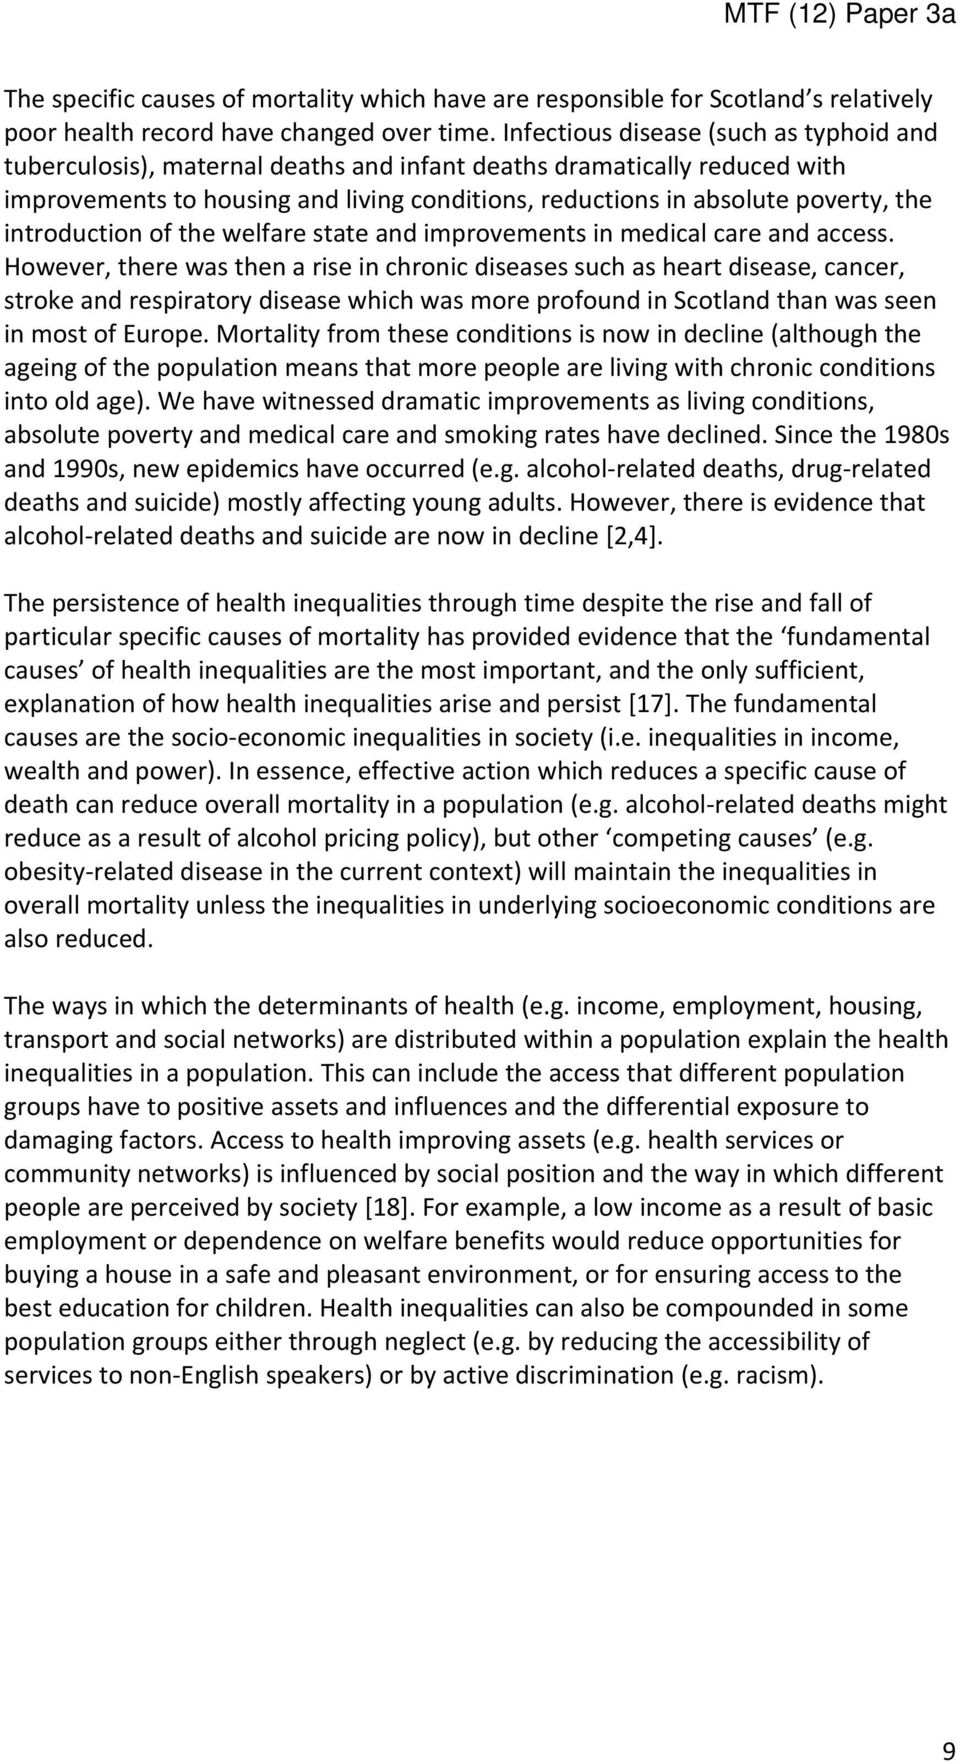 introduction of the welfare state and improvements in medical care and access.